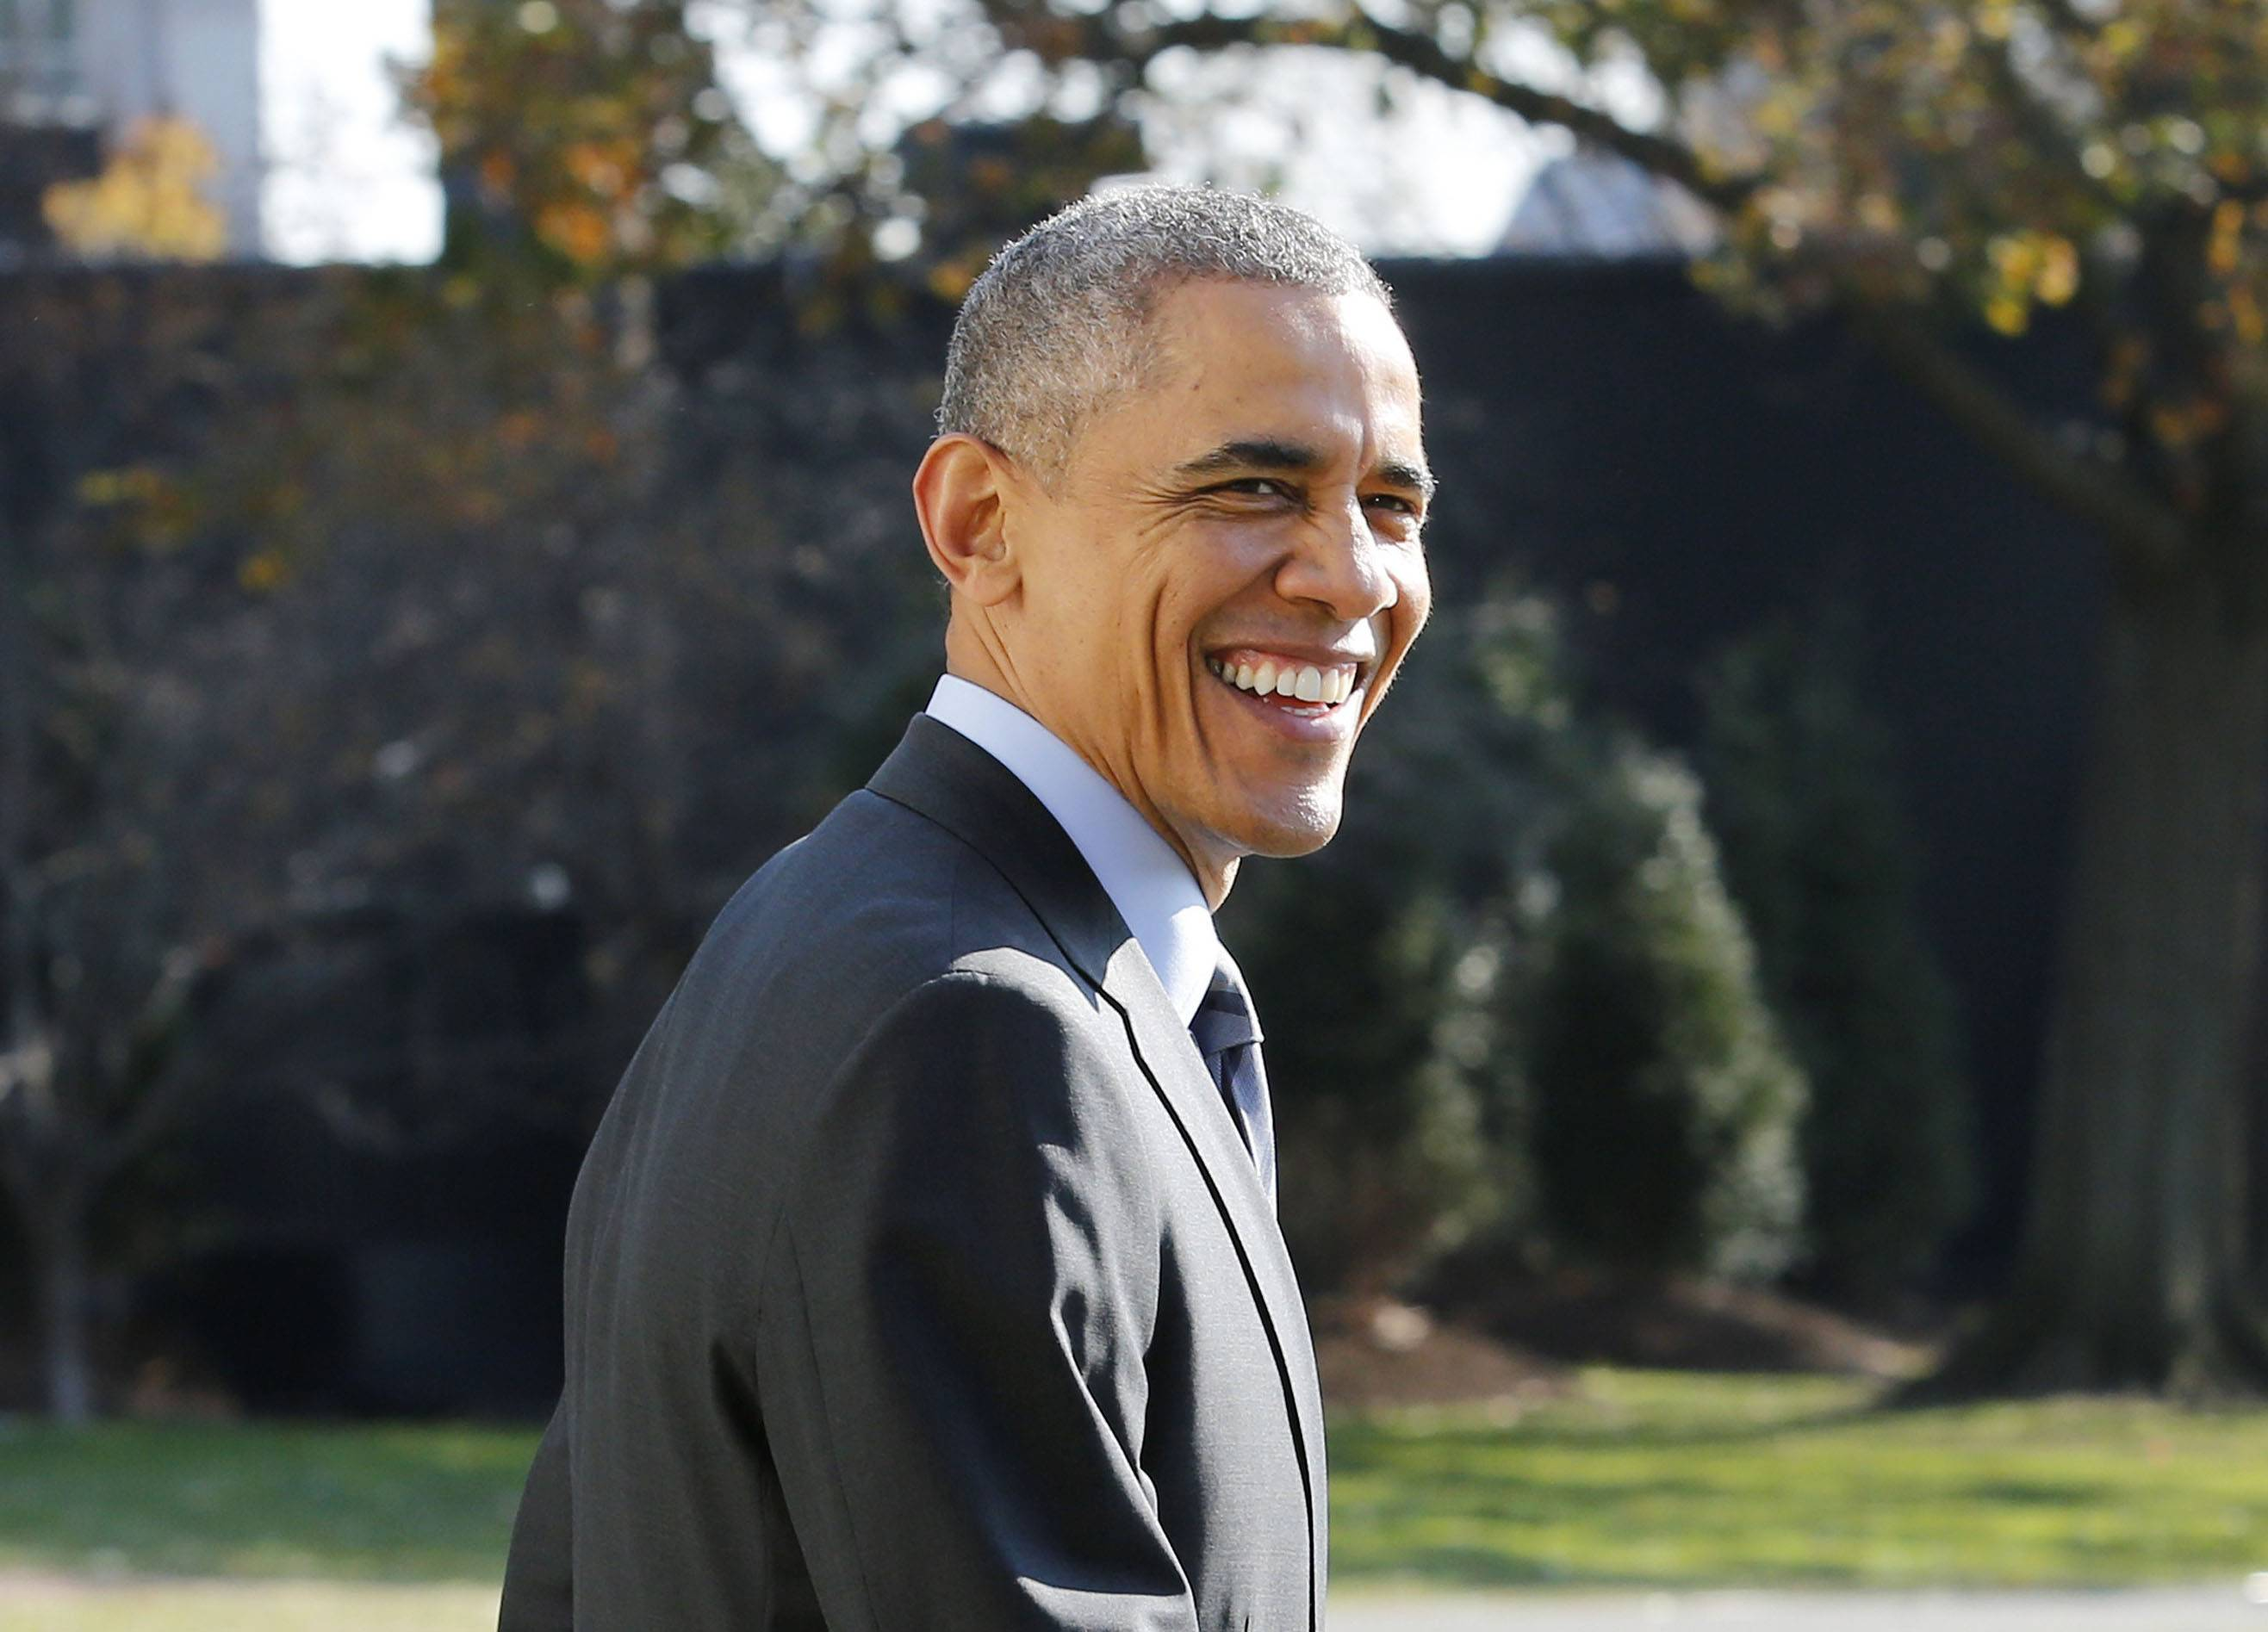 """President Obama Would Be Upset if He Were Detroit Lions Fan - President Obama is a diehard Chicago Bears fan, but admitted he would have been upset if he was a Detroit Lions follower over the infamous non-interference call against the Dallas Cowboys on Sunday. Obama said he would have been """"pretty aggravated"""" to the Detroit News.(Photo: YURI GRIPAS/AFP/Getty Images)"""